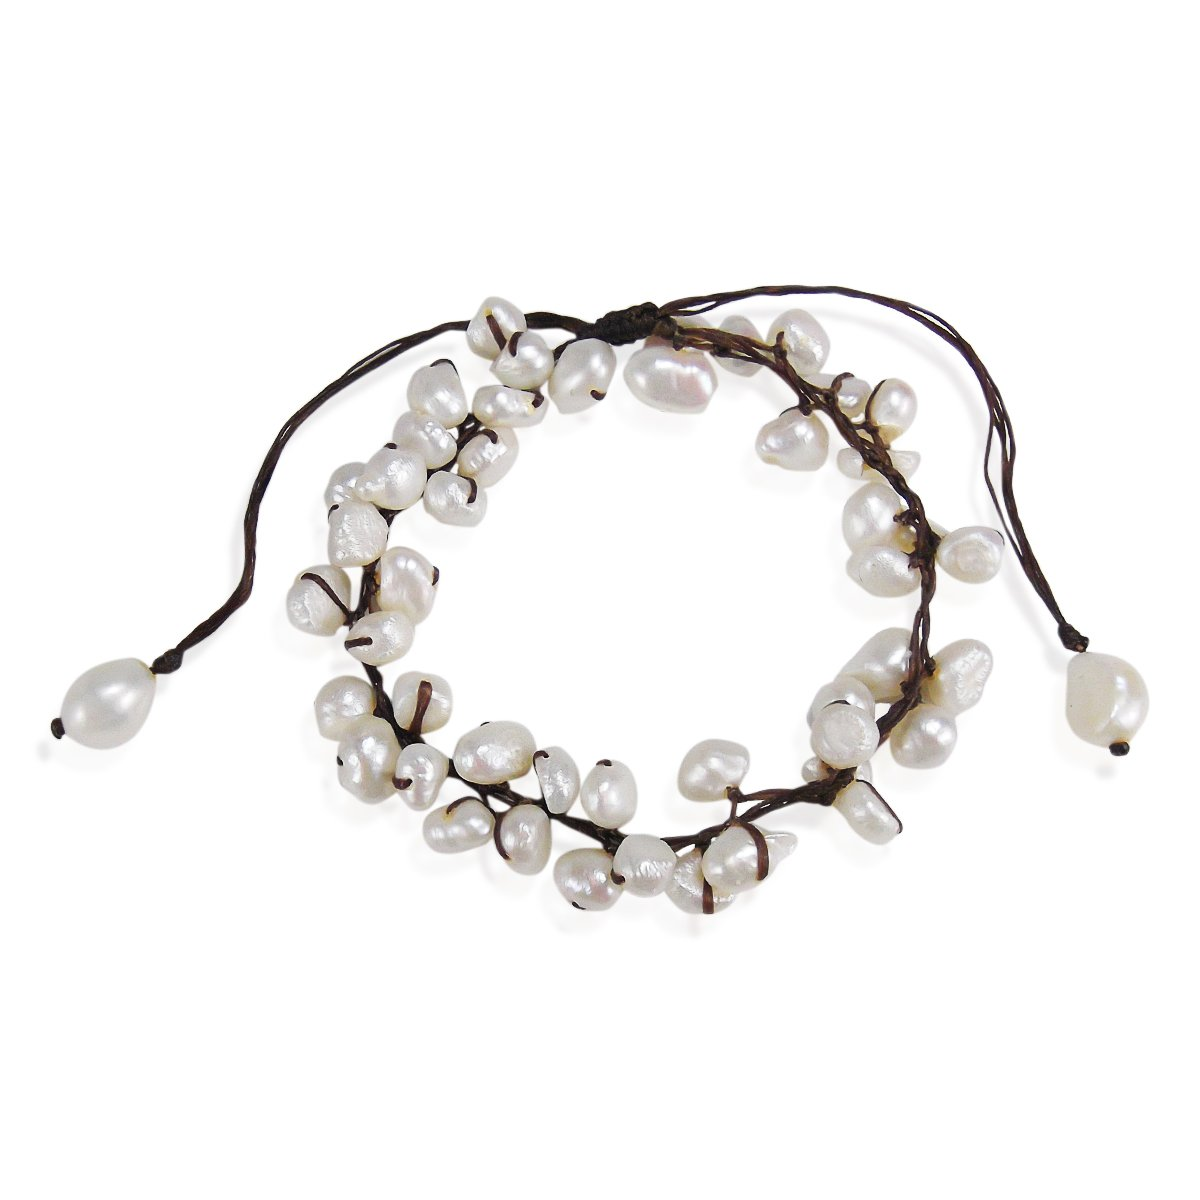 AeraVida Summer Breeze Beaded White Cultured Freshwater Pearl Pull Anklet